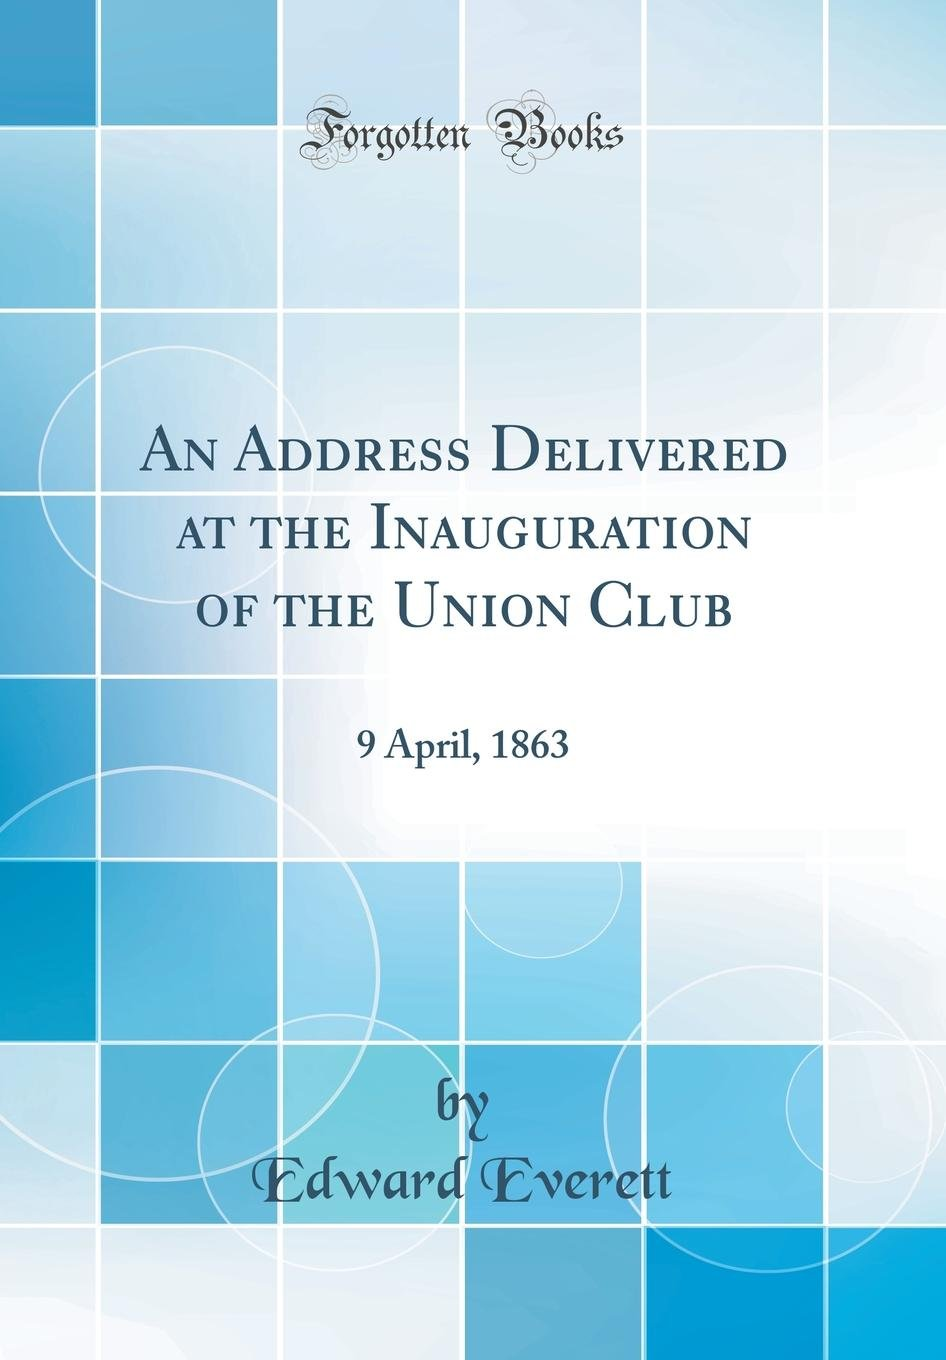 An Address Delivered at the Inauguration of the Union Club: 9 April, 1863 (Classic Reprint) pdf epub